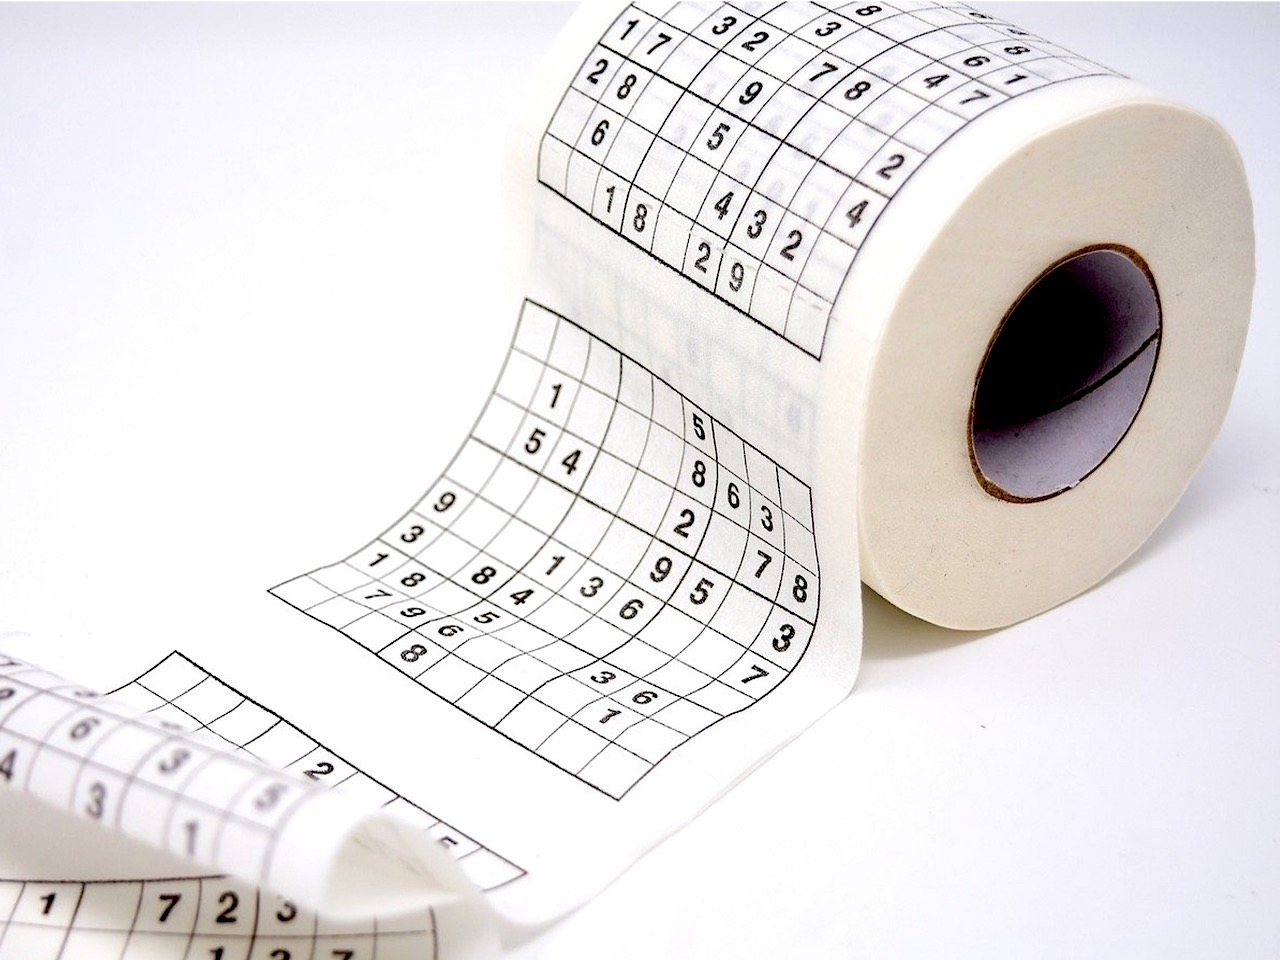 A toilet roll with Sudoku puzzles printed on each sheet